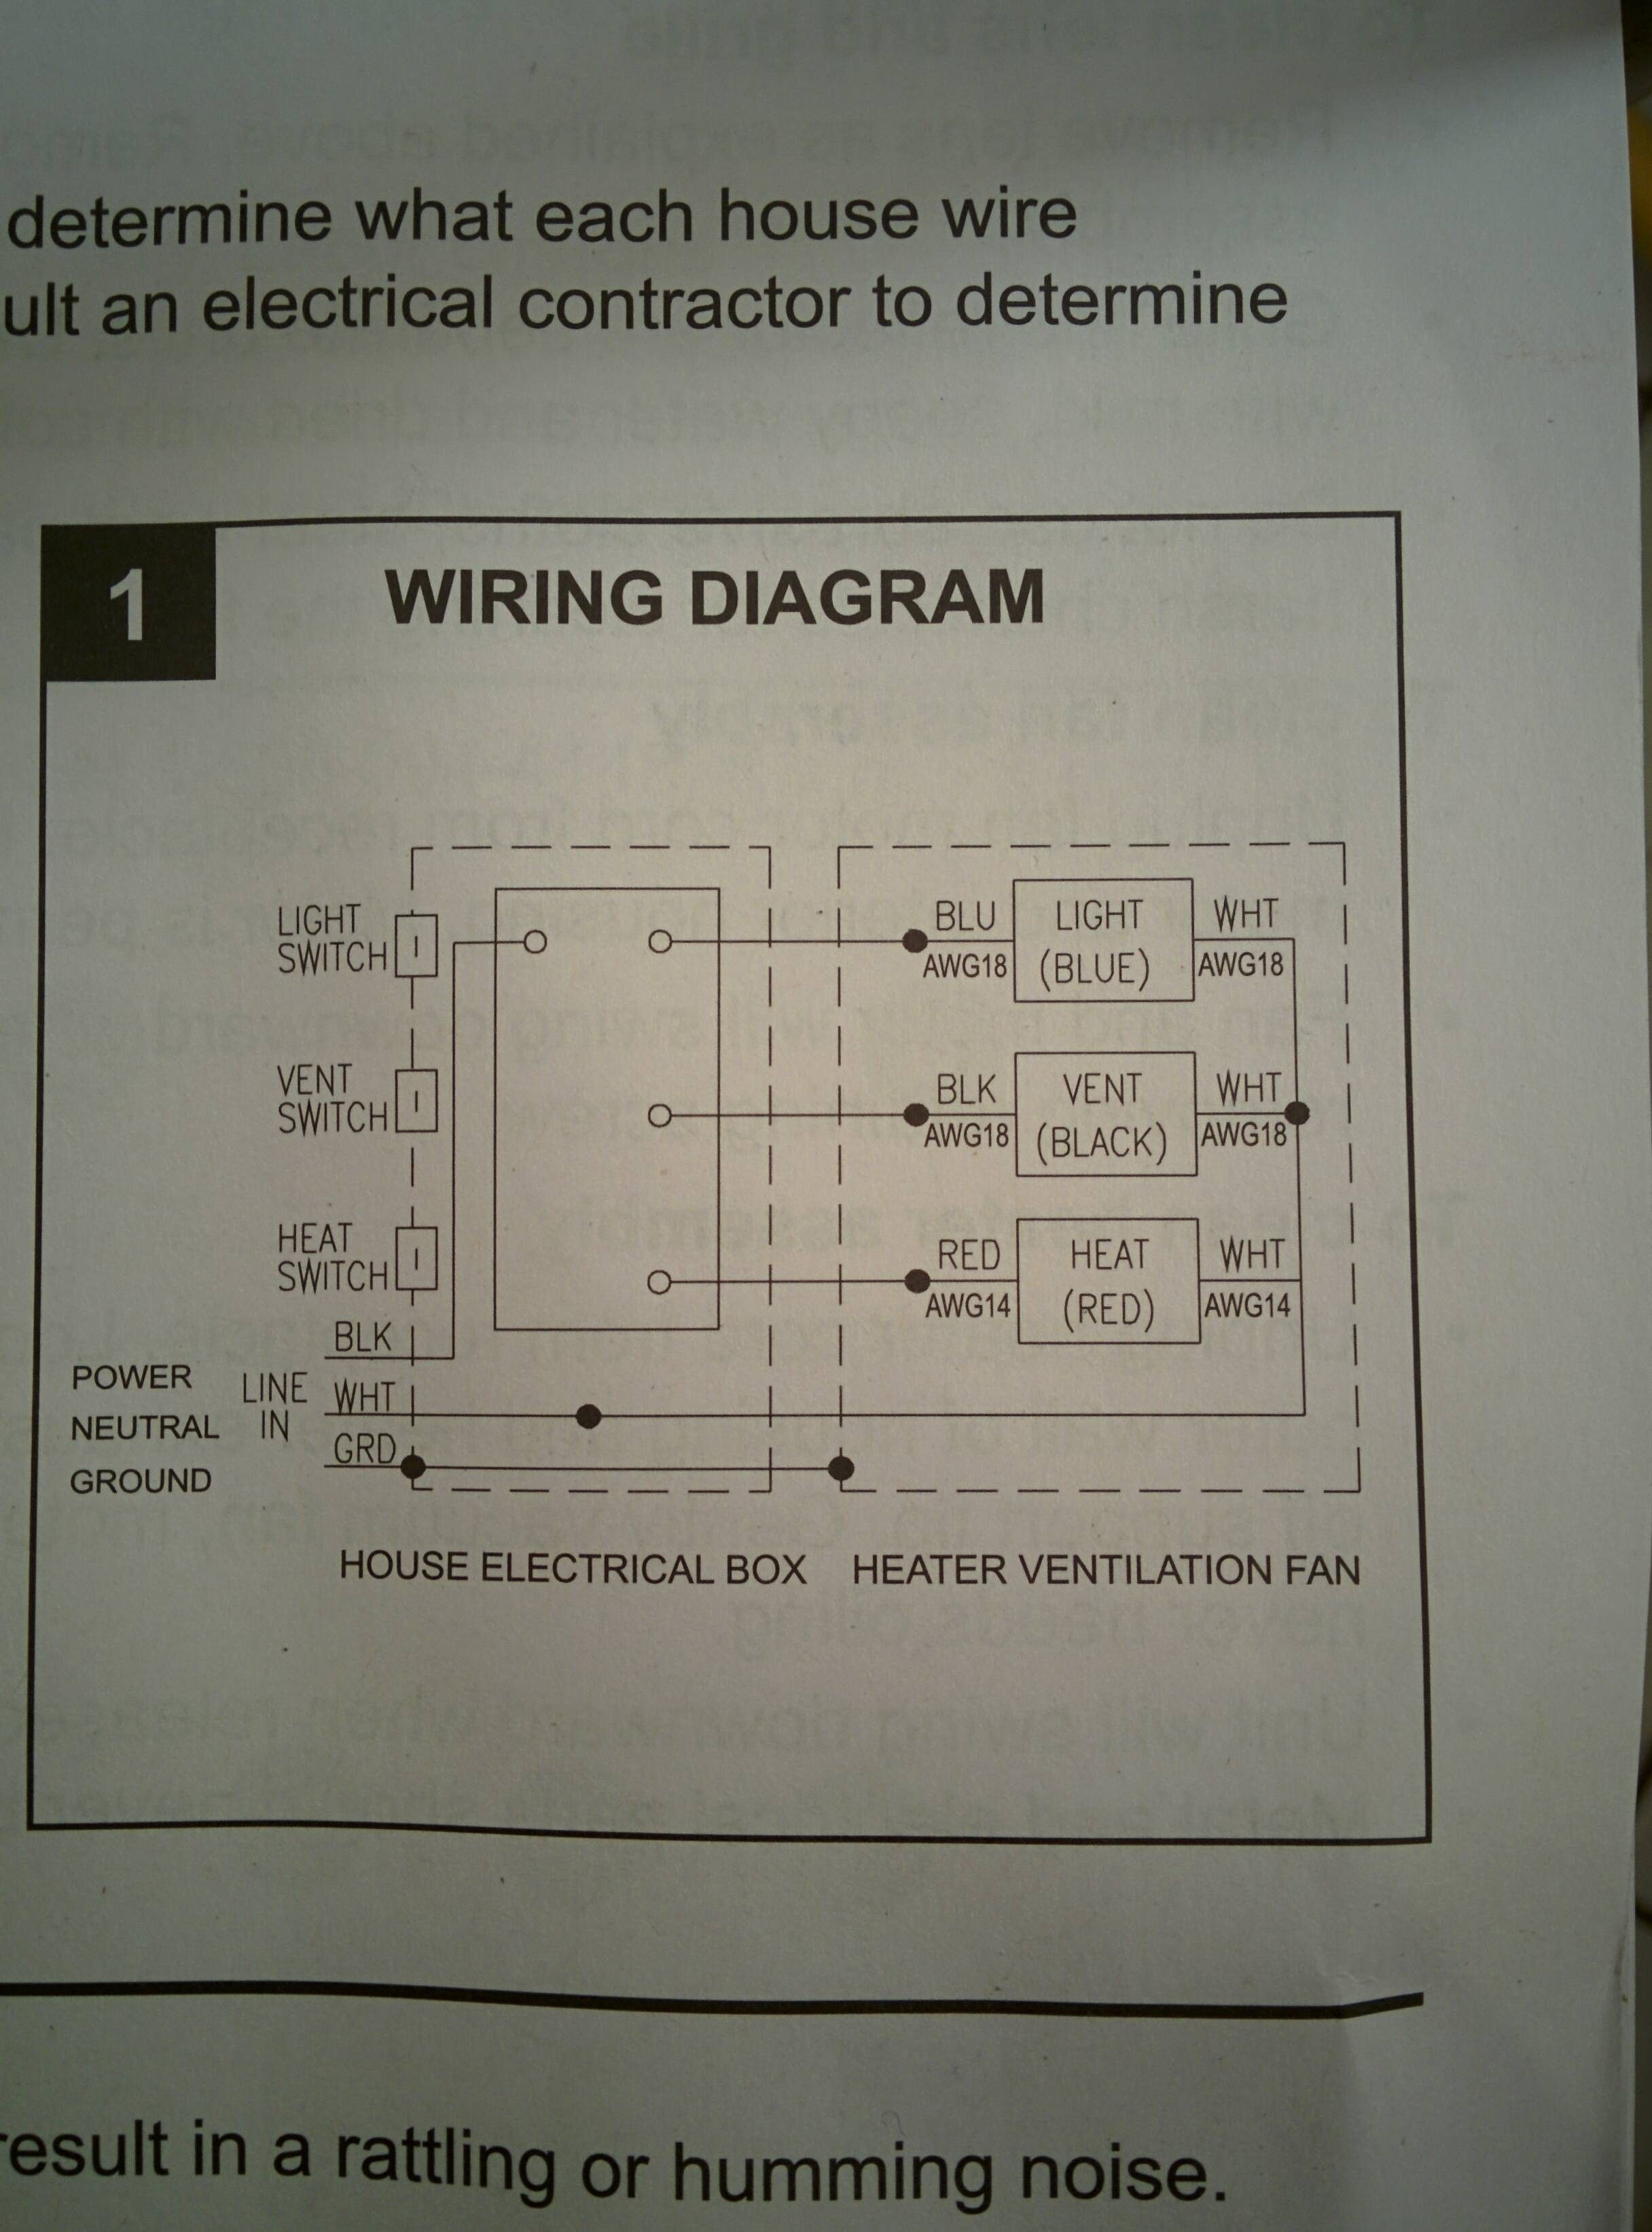 hight resolution of unique wiring diagram for extractor fan with timer diagram diagramsample diagramtemplate wiringdiagram diagramchart worksheet worksheettemplate